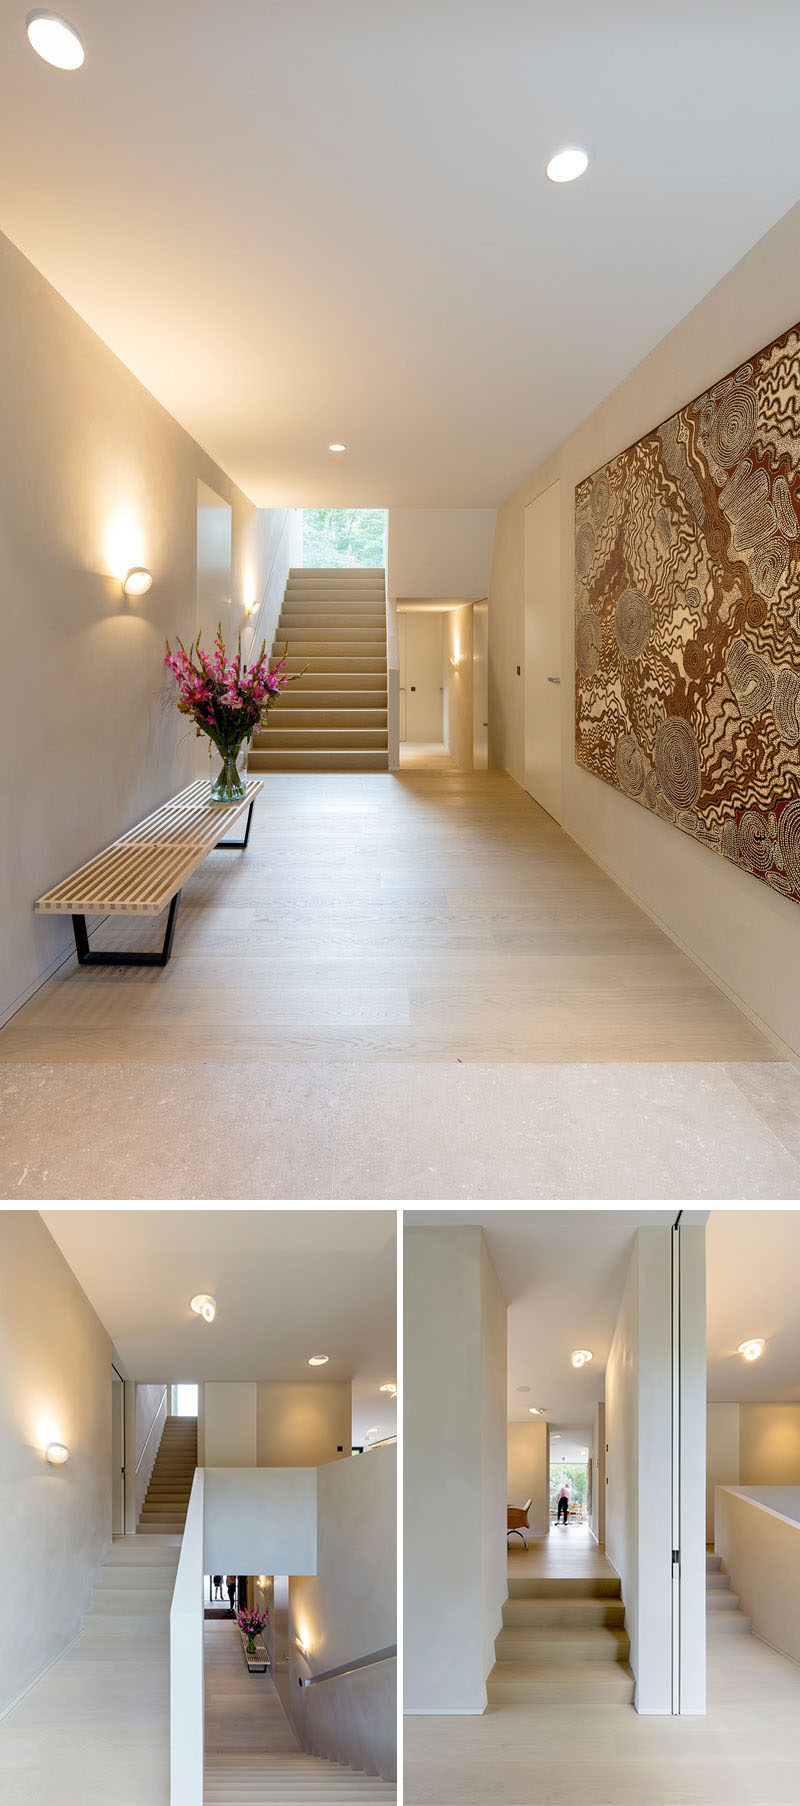 Stepping inside, the interior of this modern house is bright with light colored flooring, minimal furniture and wall art. Stairs lead to the different levels and areas of the house. #ModernHallway #Stairs